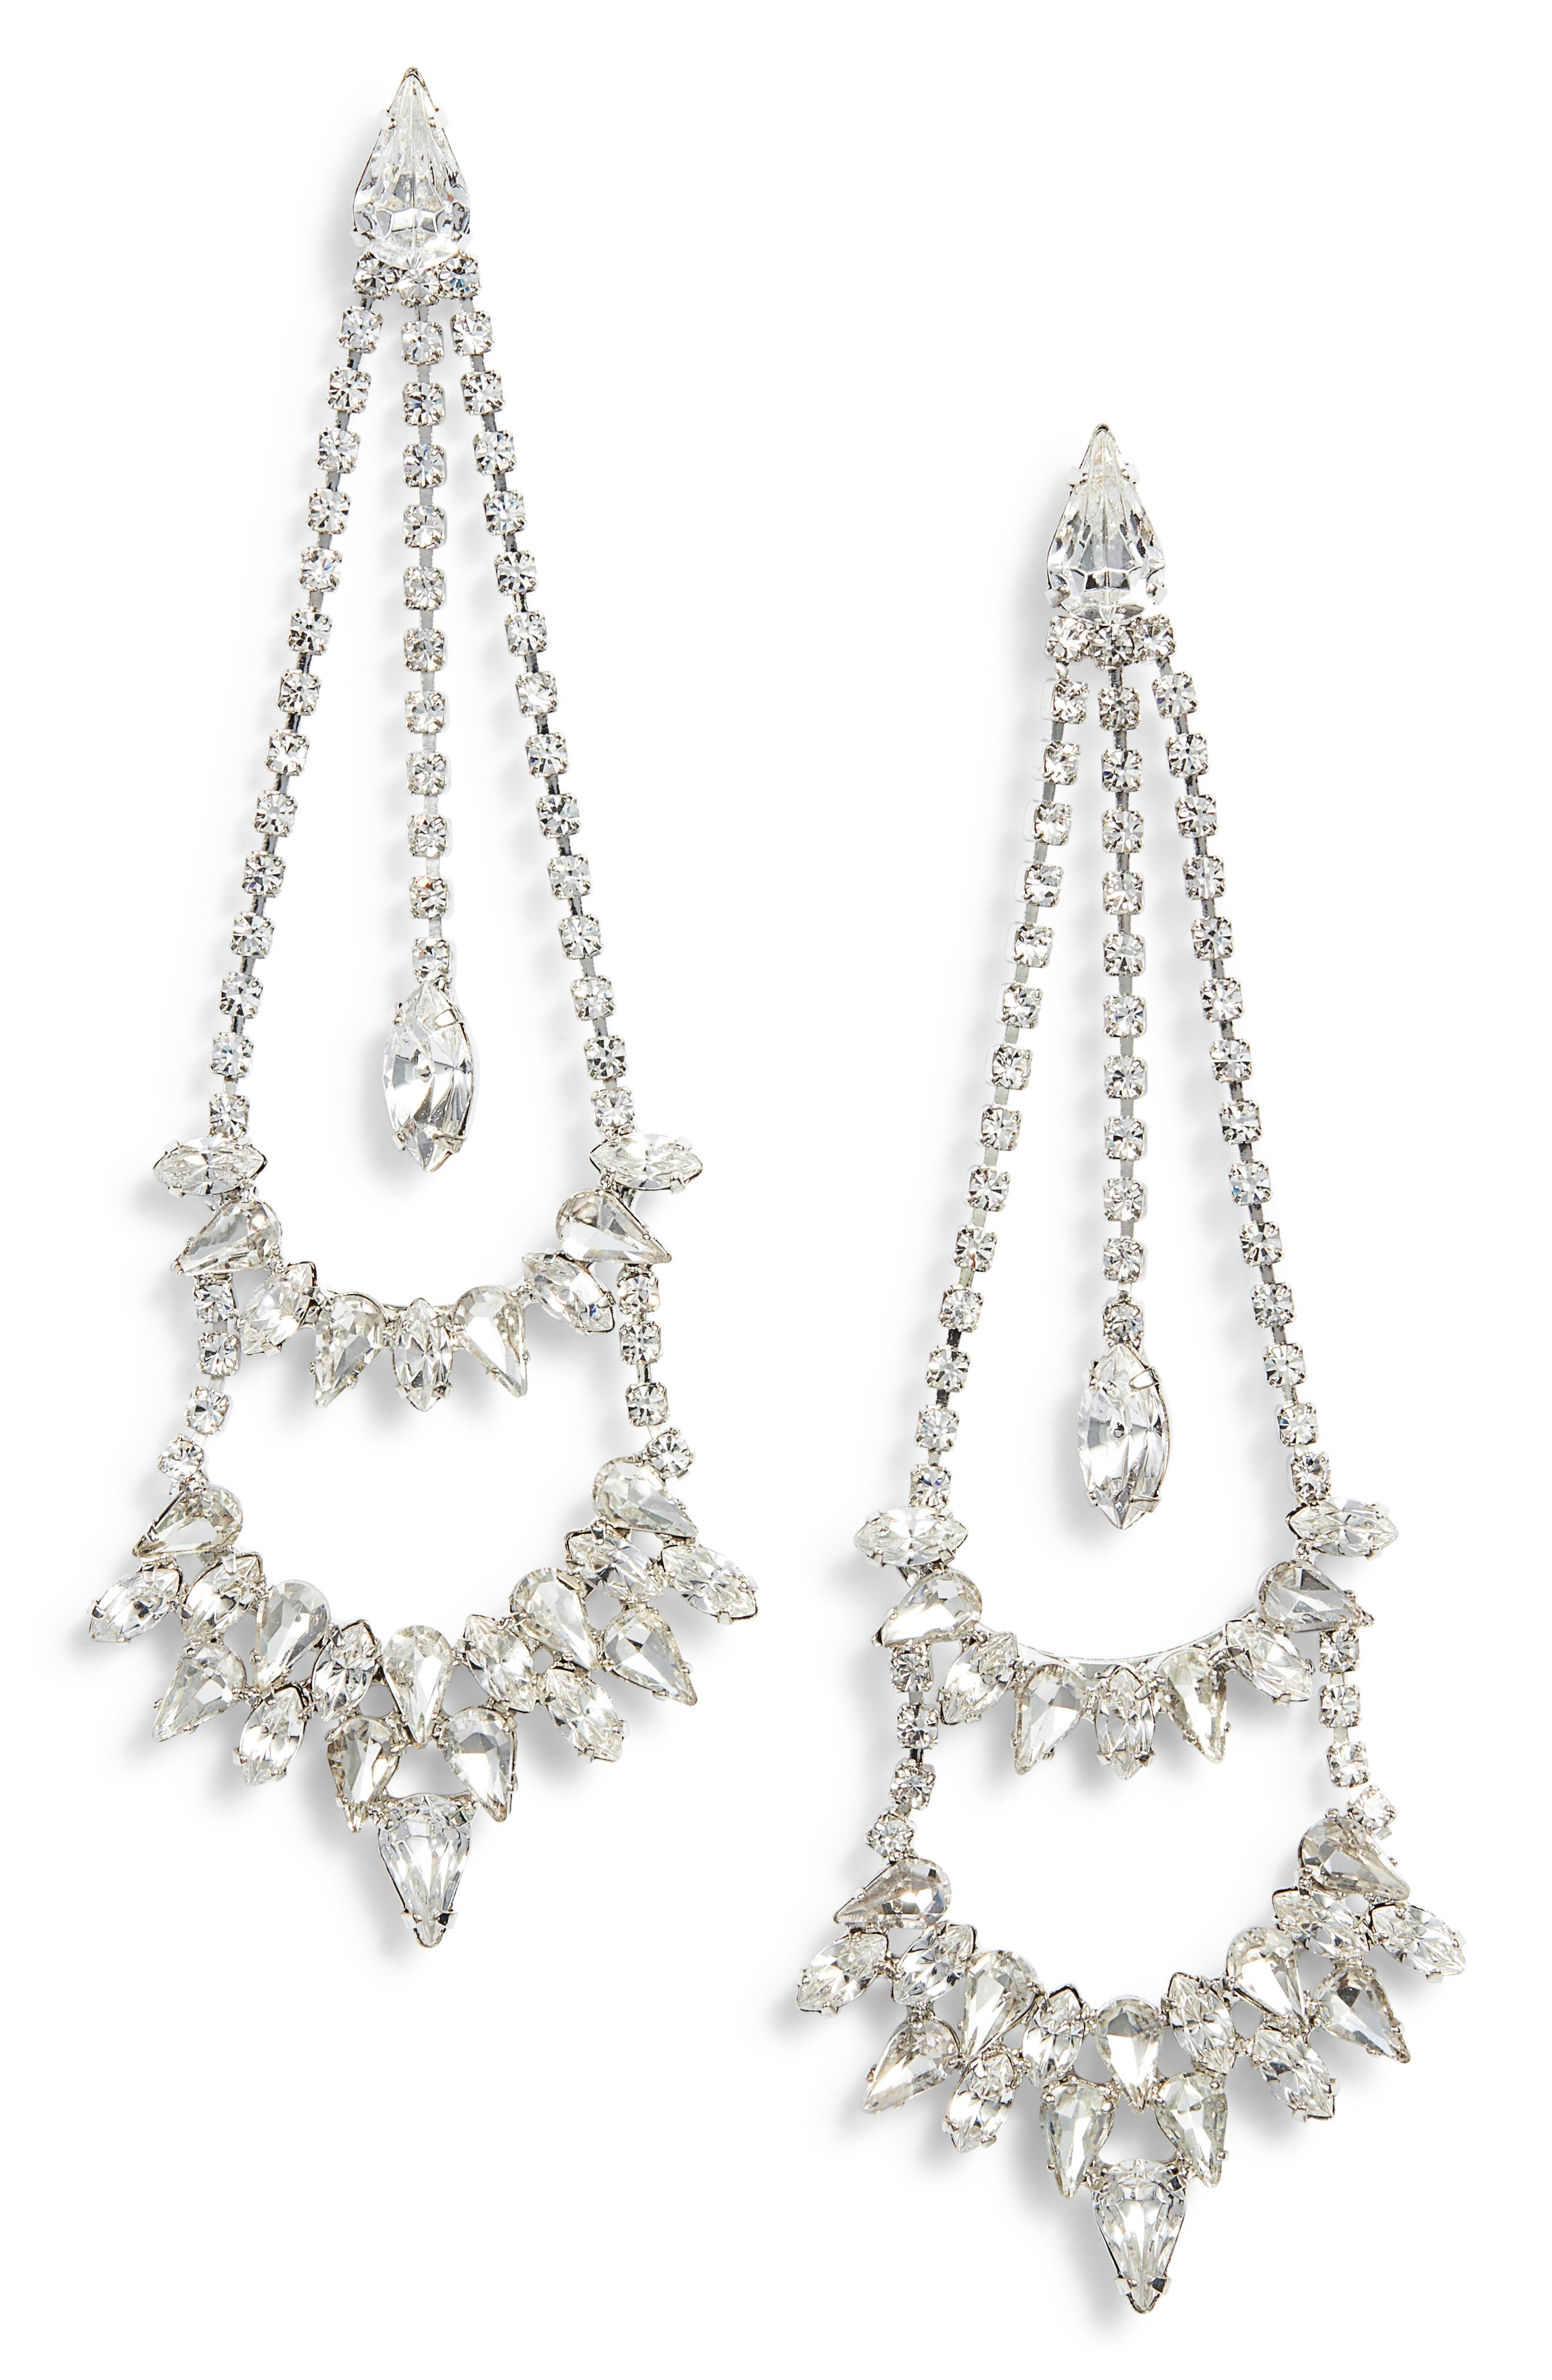 Main Image - CRISTABELLE Crystal Double Tier Statement Earrings